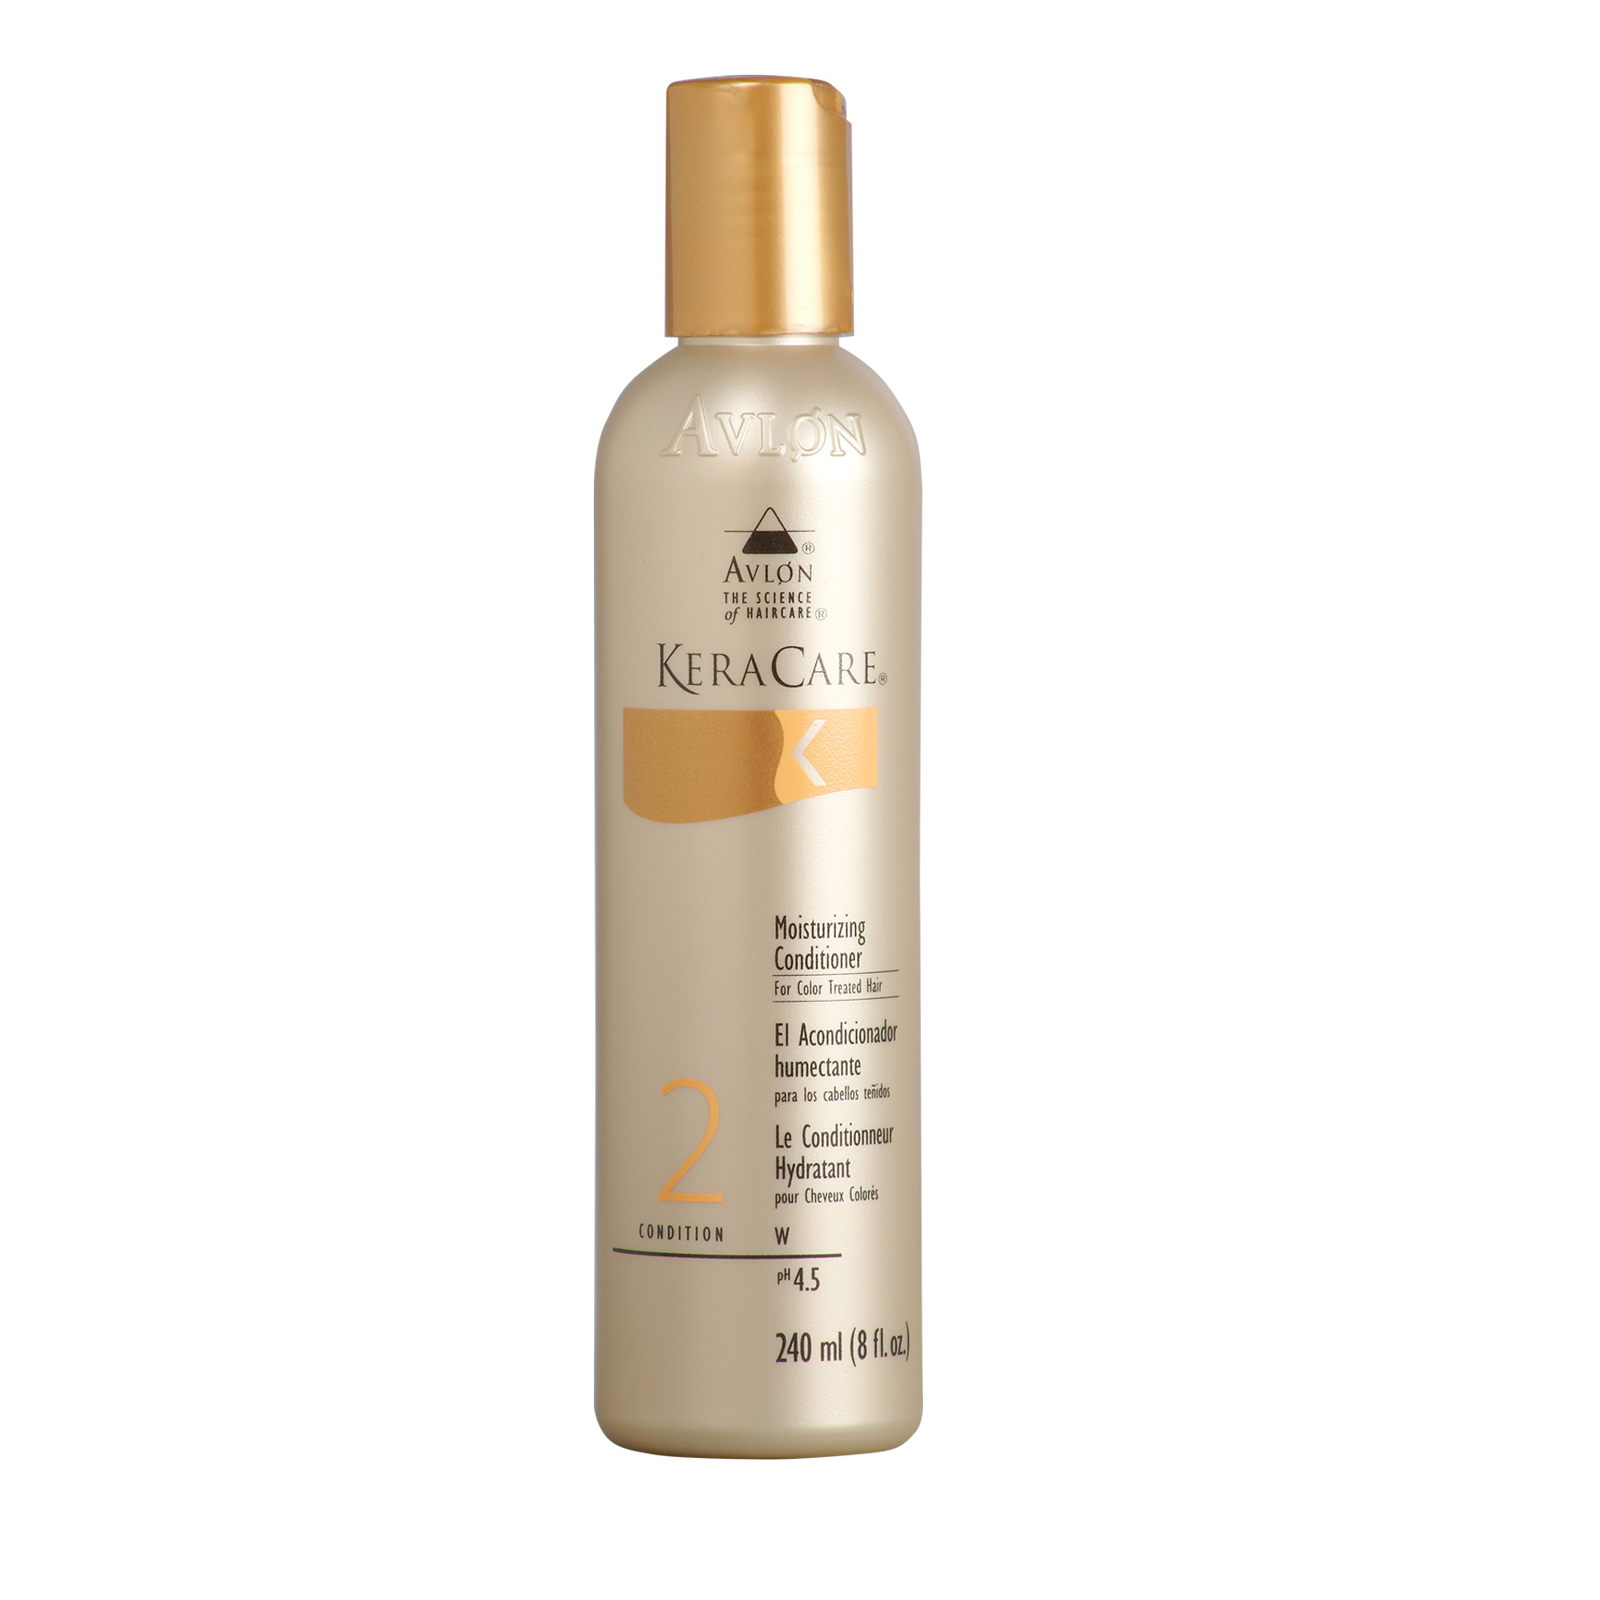 Keracare Moisturizing Conditioner For Color Treated Hair Avlon